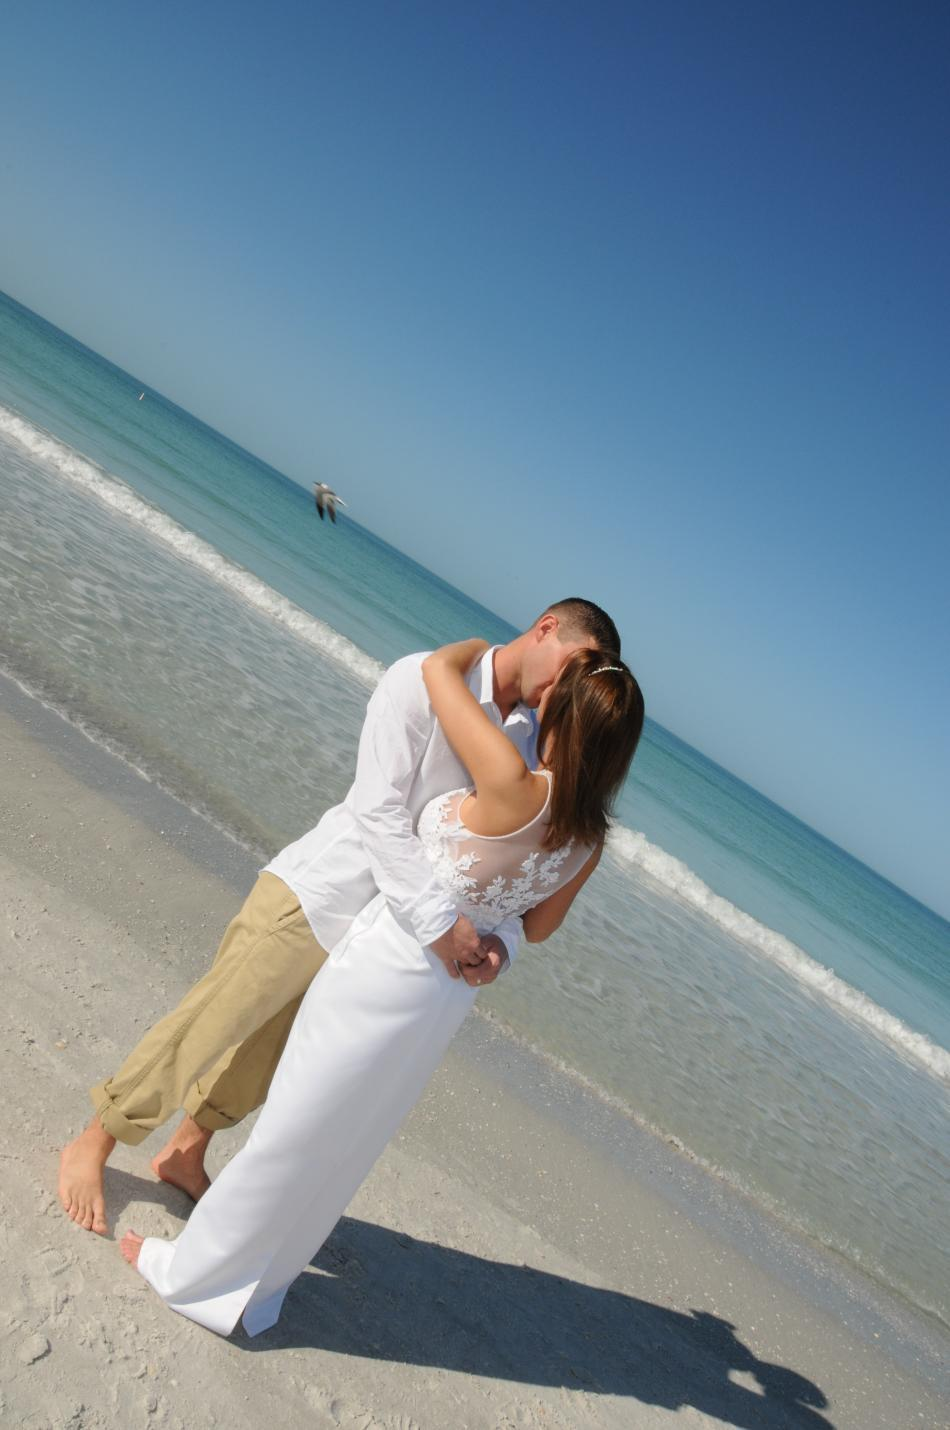 Wedding_ideas_florida_beach_wedding_bride_groom.full